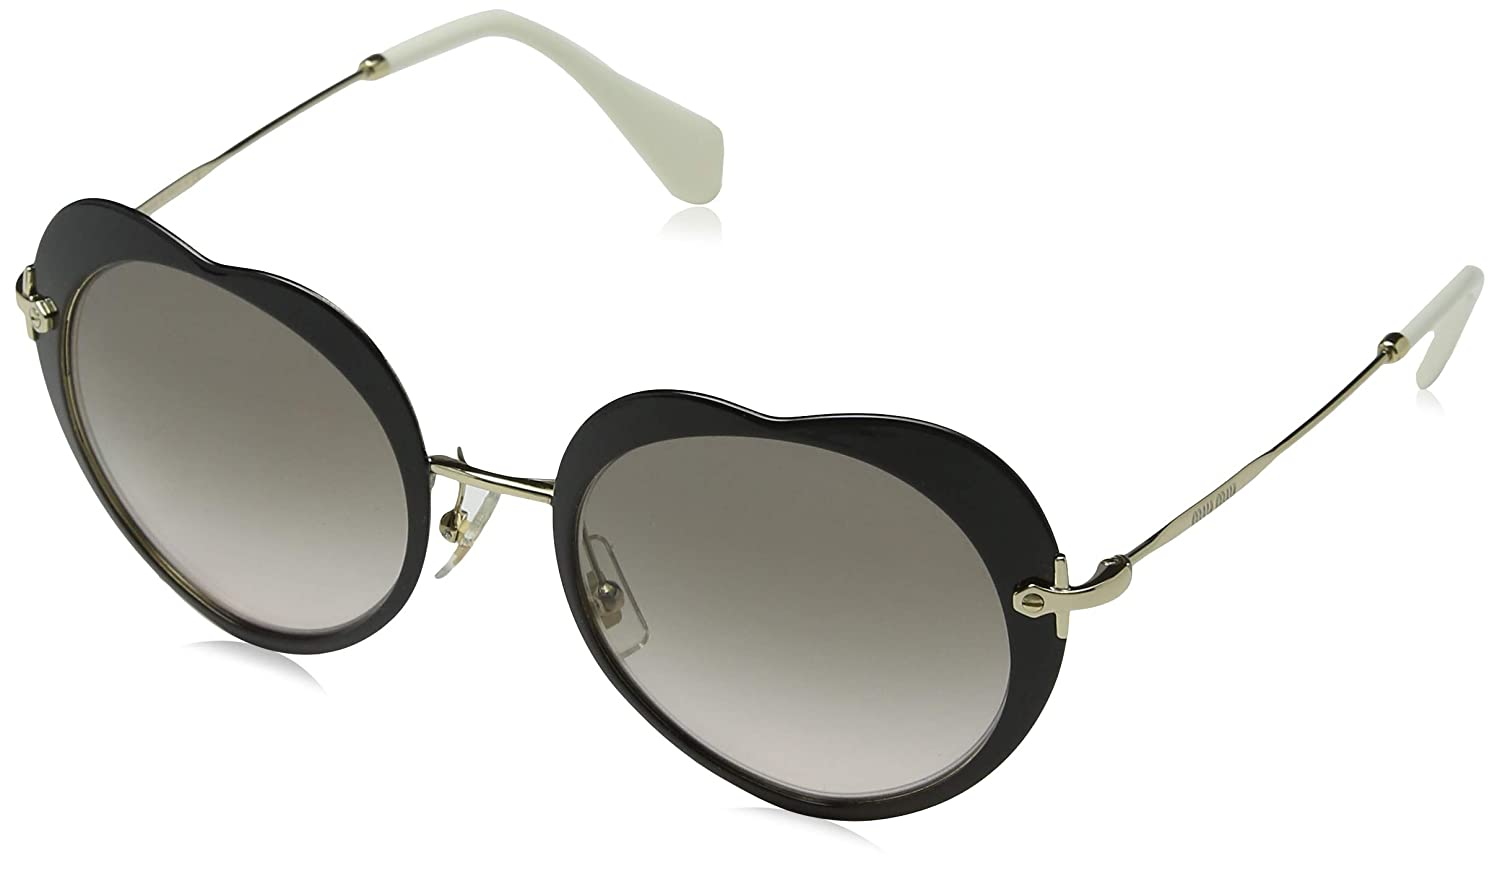 059c4413c279 Amazon.com  Miu Miu MU54RS 1AB4K0 Black Gold MU54RS Round Sunglasses Lens  Category 2 Size  Miu Miu  Clothing